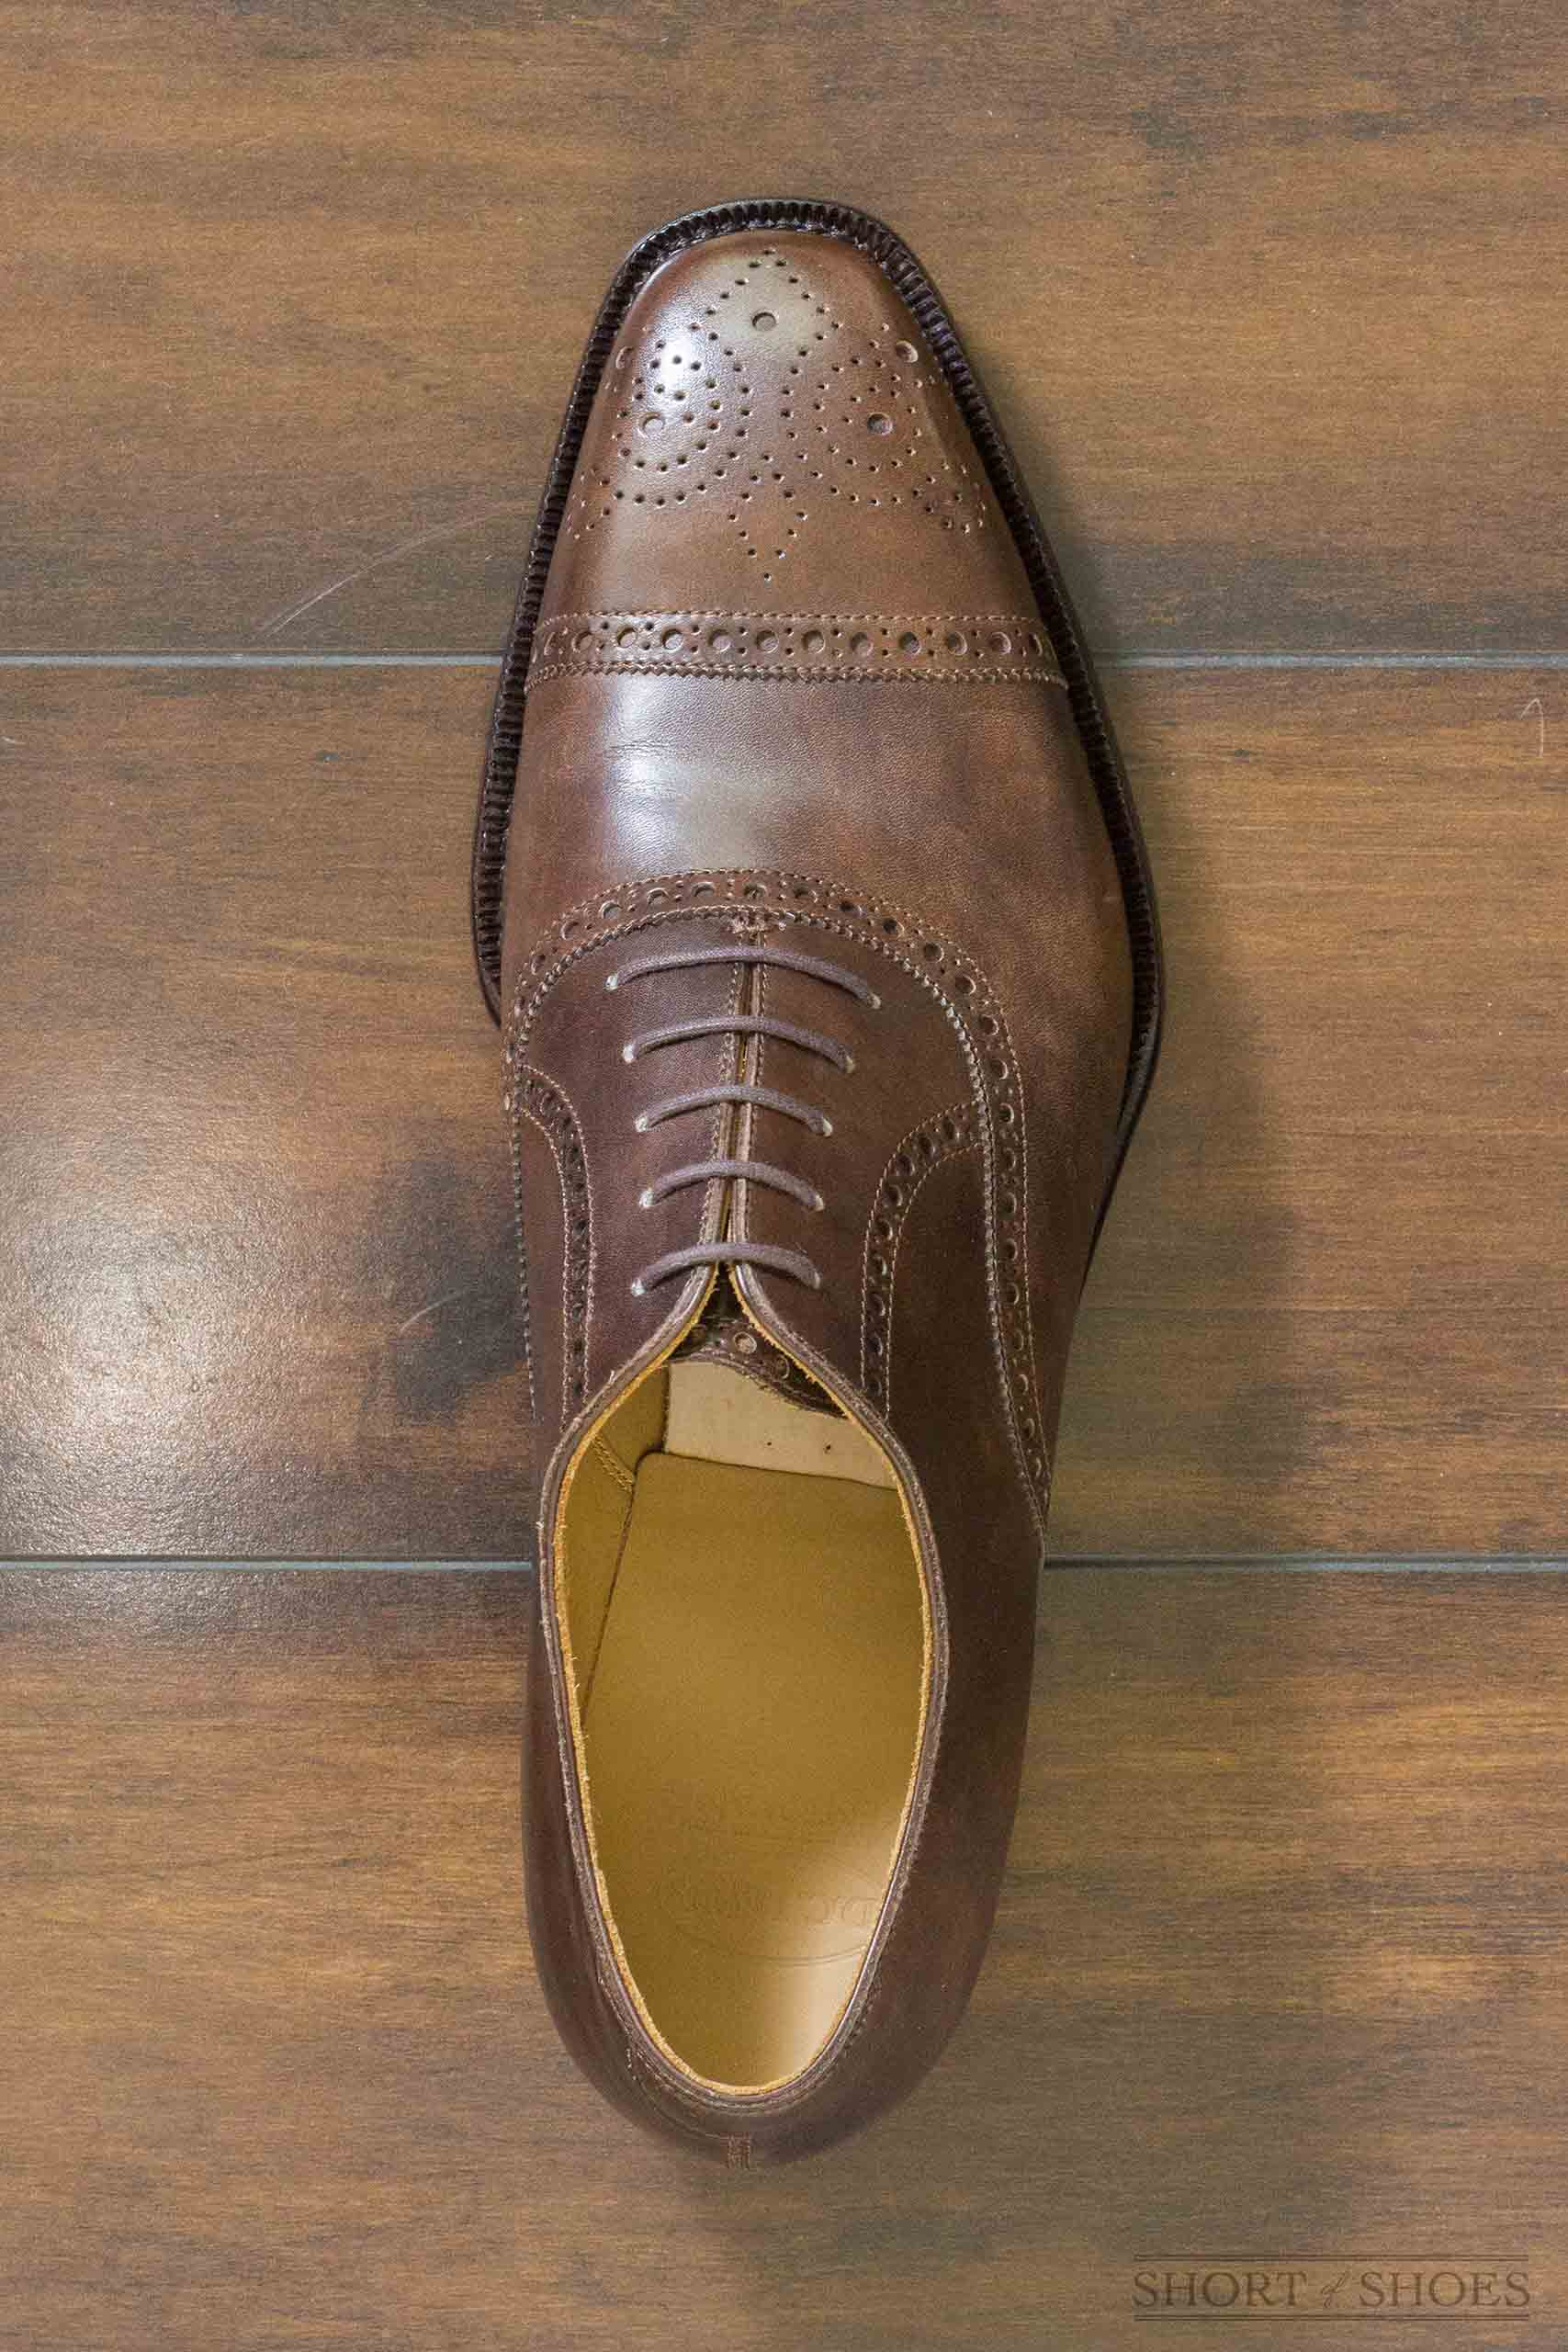 f1428526c Kent Wang Shoes Review- Handgrade Line by DC Lewis